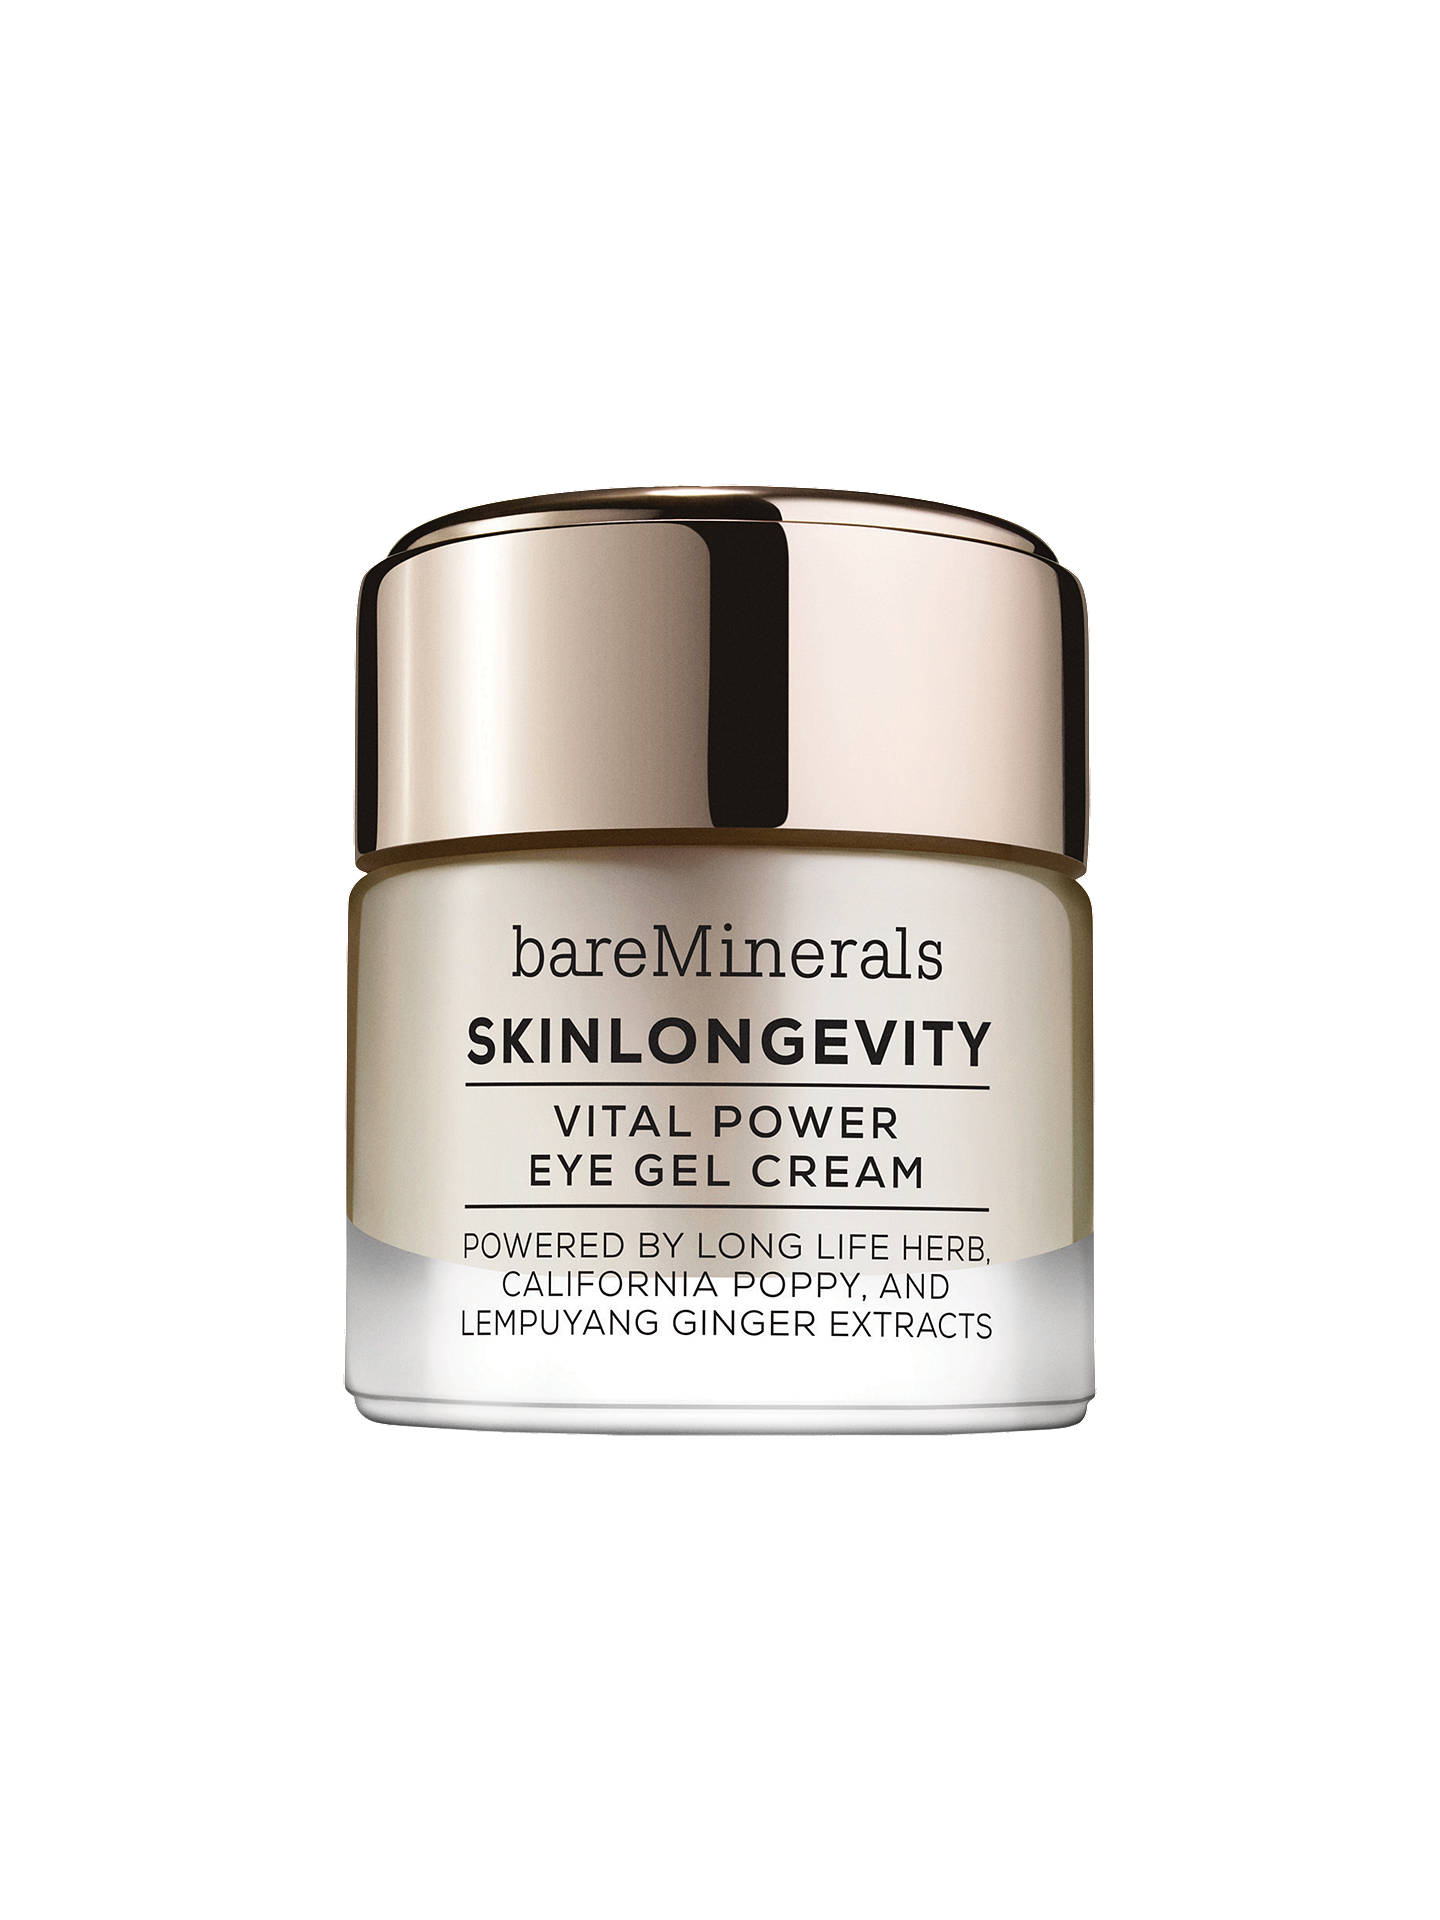 Bare Minerals Skin Longevity® Vital Power Eye Gel Cream, 15g by Bareminerals